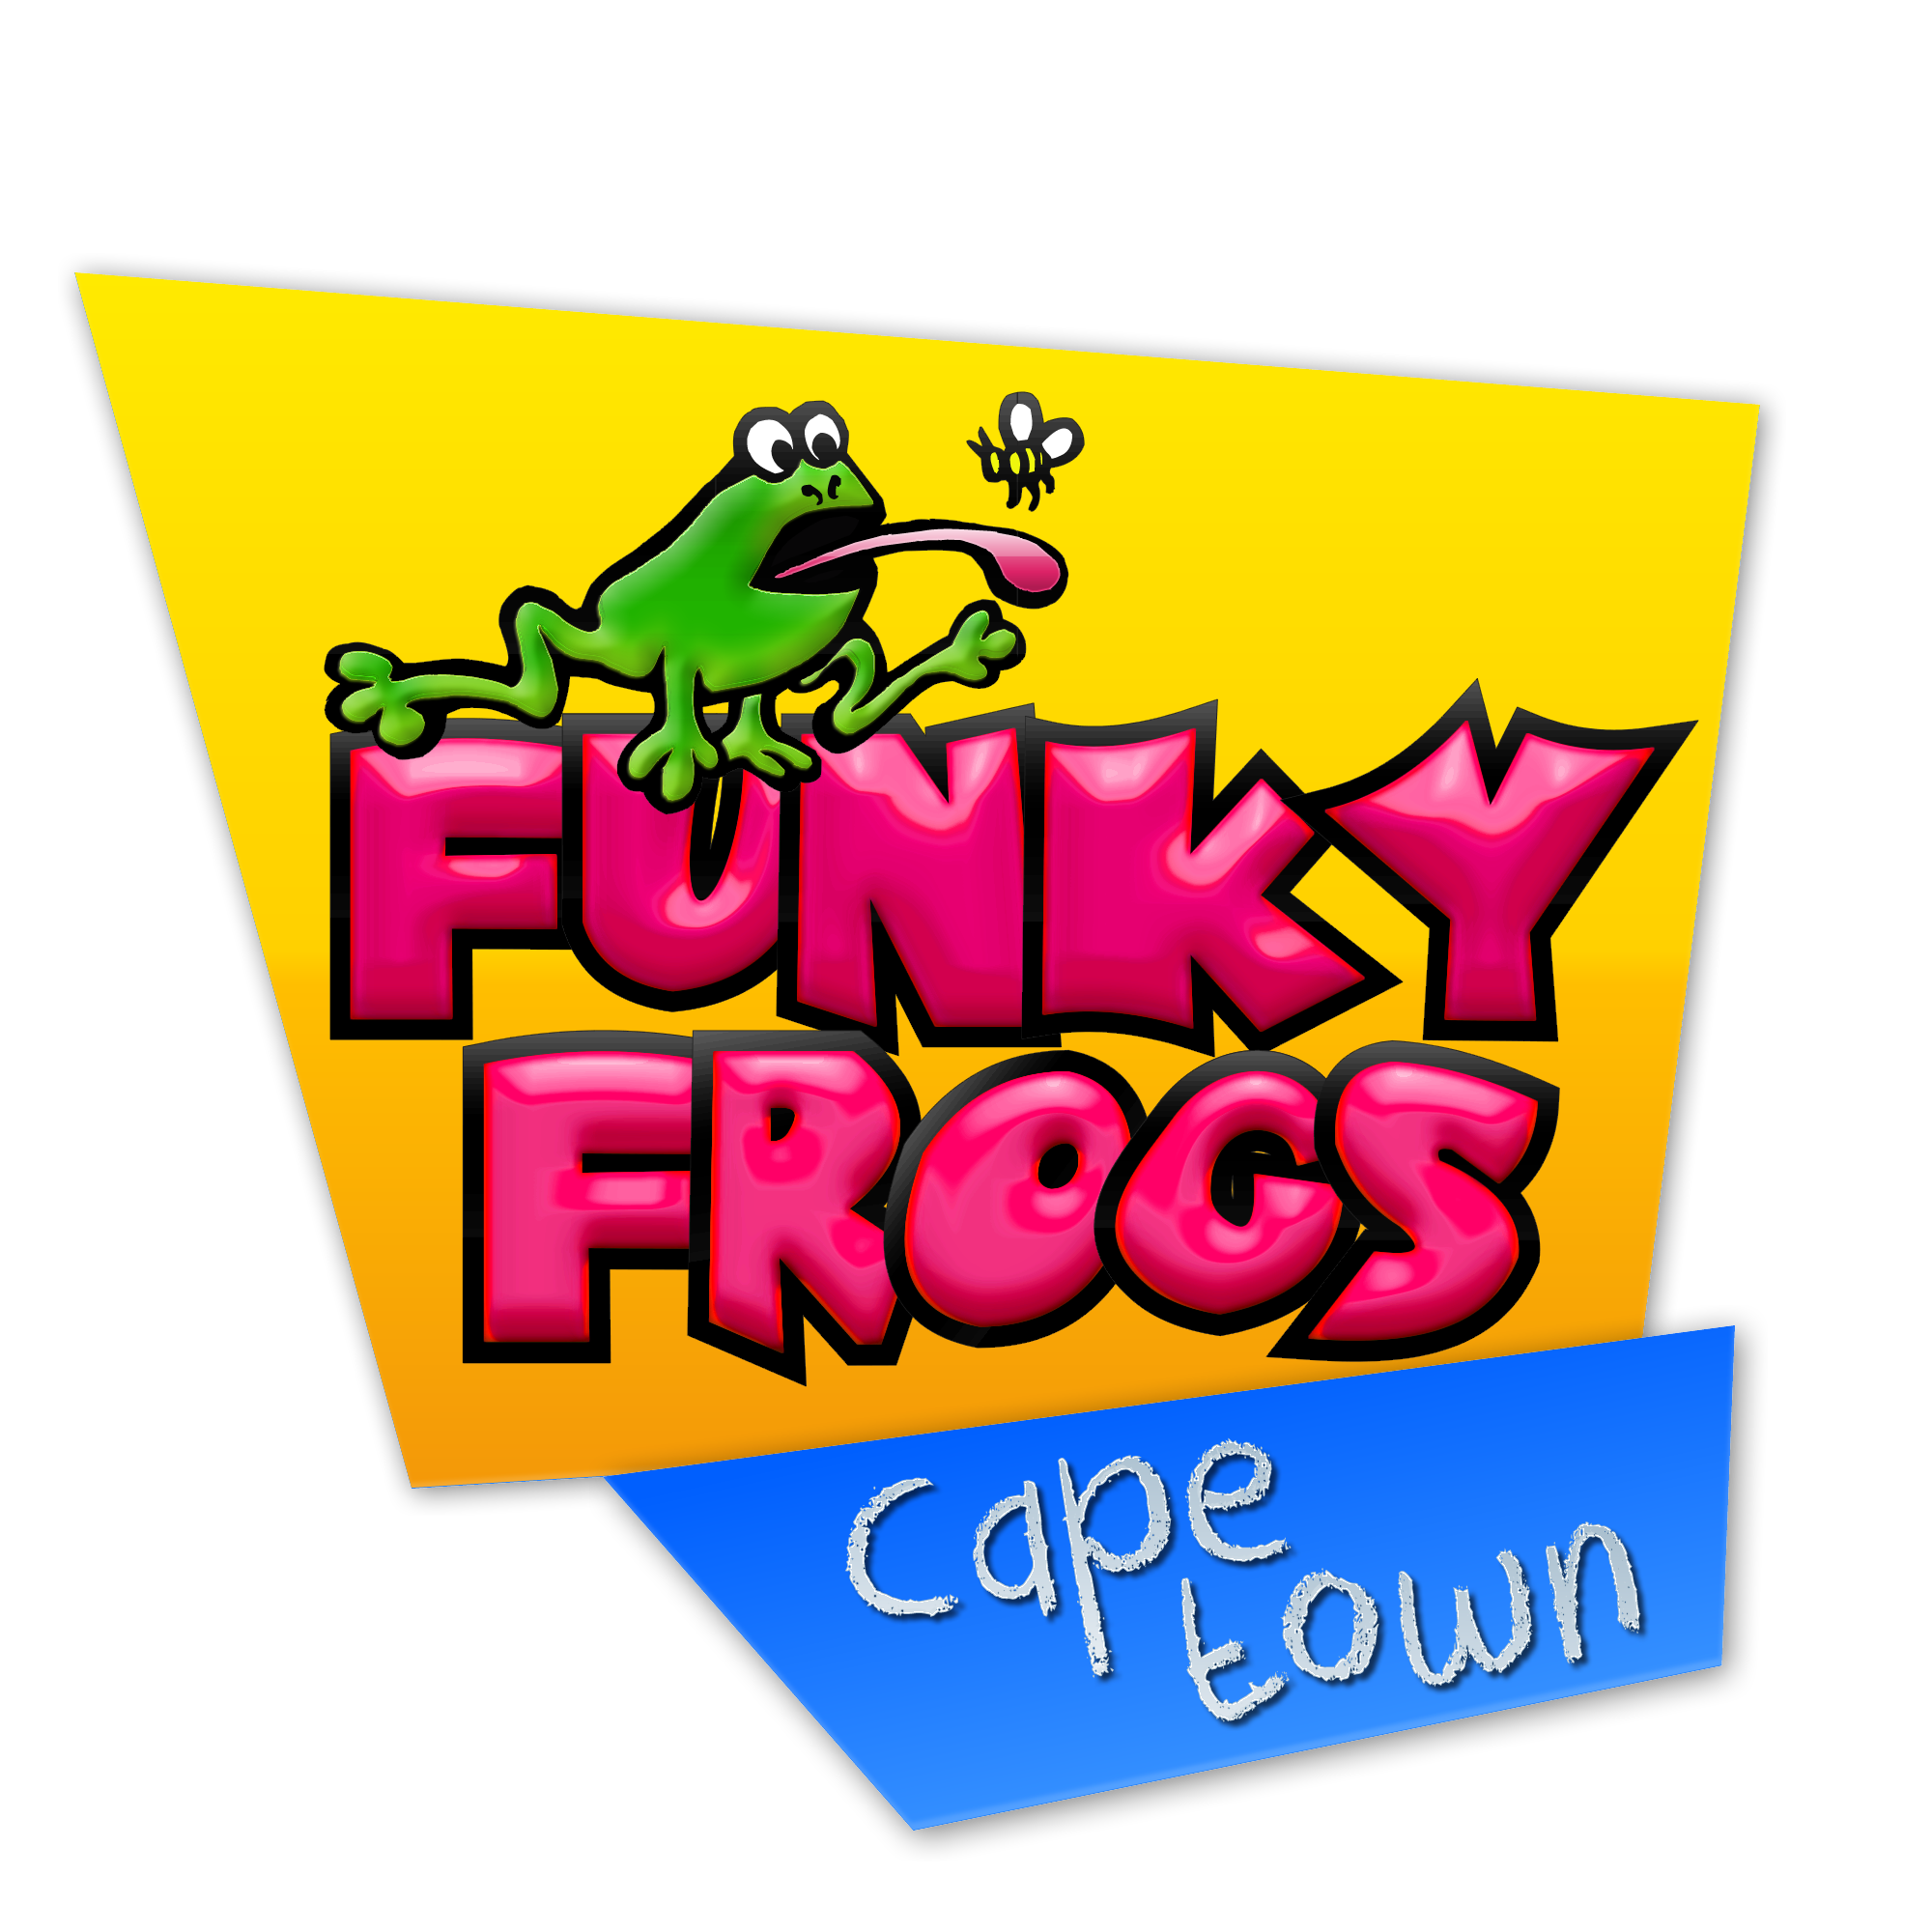 Outside clipart playpark. Funky frogs cape town